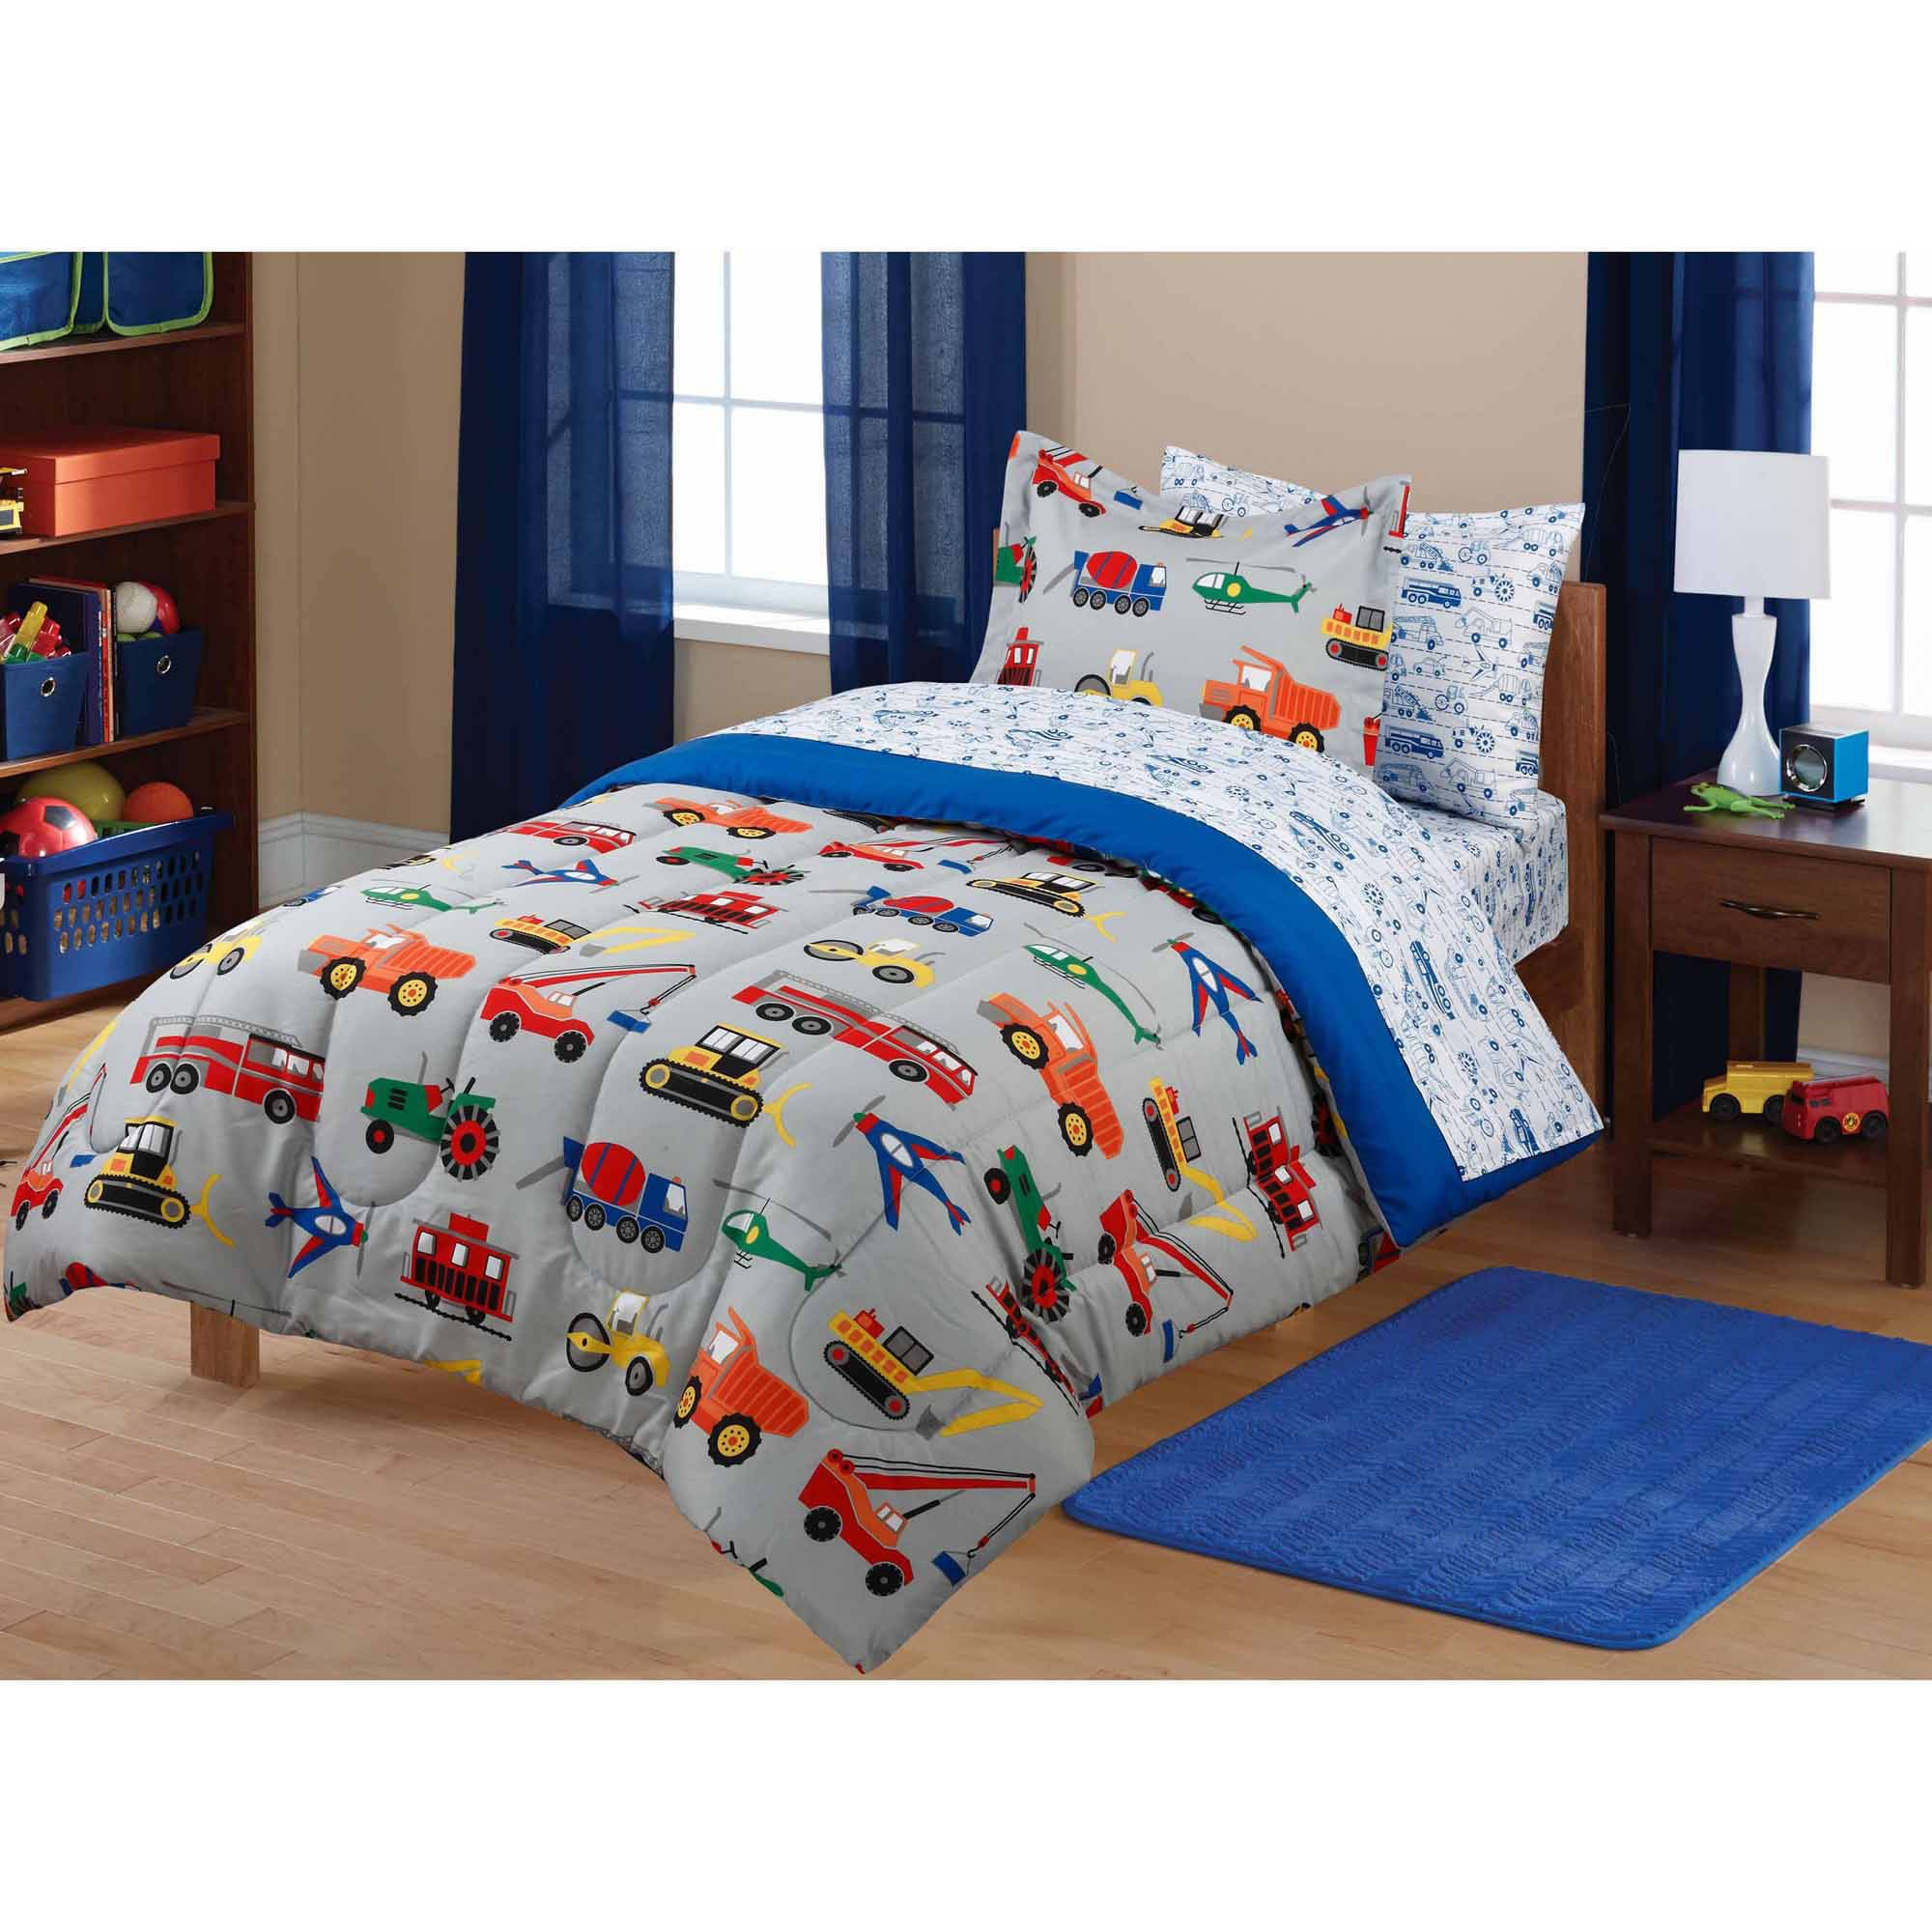 Get Quotations 7 Piece Boys Multi Color Twin Transportation Themed Comforter Set With Sheets Planes Tractors Cars